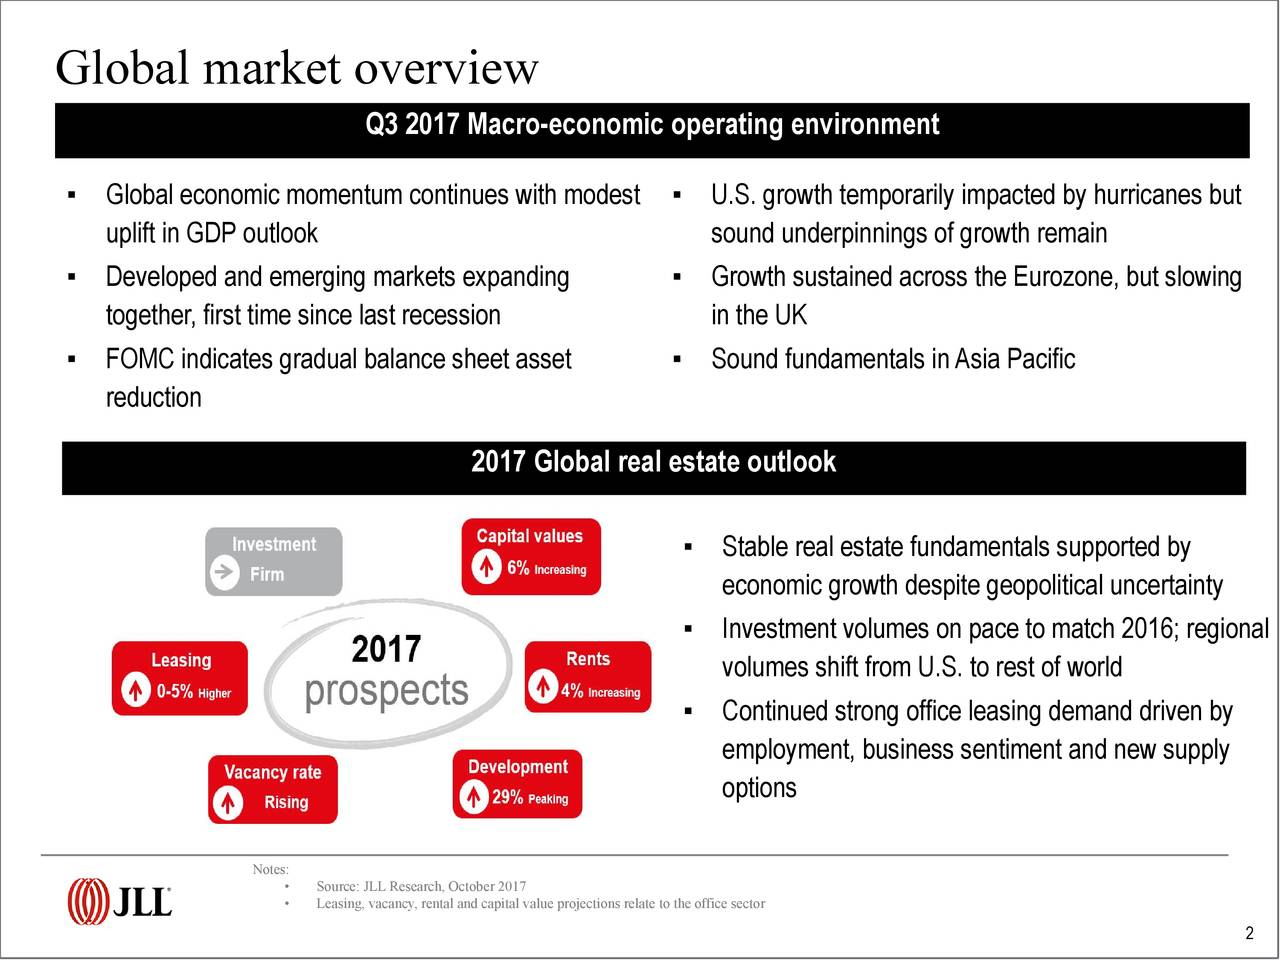 Q3 2017 Macro-economic operating environment ▪ Global economic momentum continues with modest ▪ U.S. growth temporarily impacted by hurricanes but uplift in GDP outlook sound underpinnings of growth remain ▪ Developed and emerging markets expanding ▪ Growth sustained across the Eurozone, but slowing together, first time since last recession in the UK ▪ FOMC indicates gradual balance sheet asset ▪ Sound fundamentals inAsia Pacific reduction 2017 Global real estate outlook ▪ Stable real estate fundamentals supported by economic growth despite geopolitical uncertainty ▪ Investment volumes on pace to match 2016; regional volumes shift from U.S. to rest of world ▪ Continued strong office leasing demand driven by employment, business sentiment and new supply options Not•s: Source: JLL Research, October 2017 • Leasing, vacancy, rental and capital value projections relate to the office sector 2